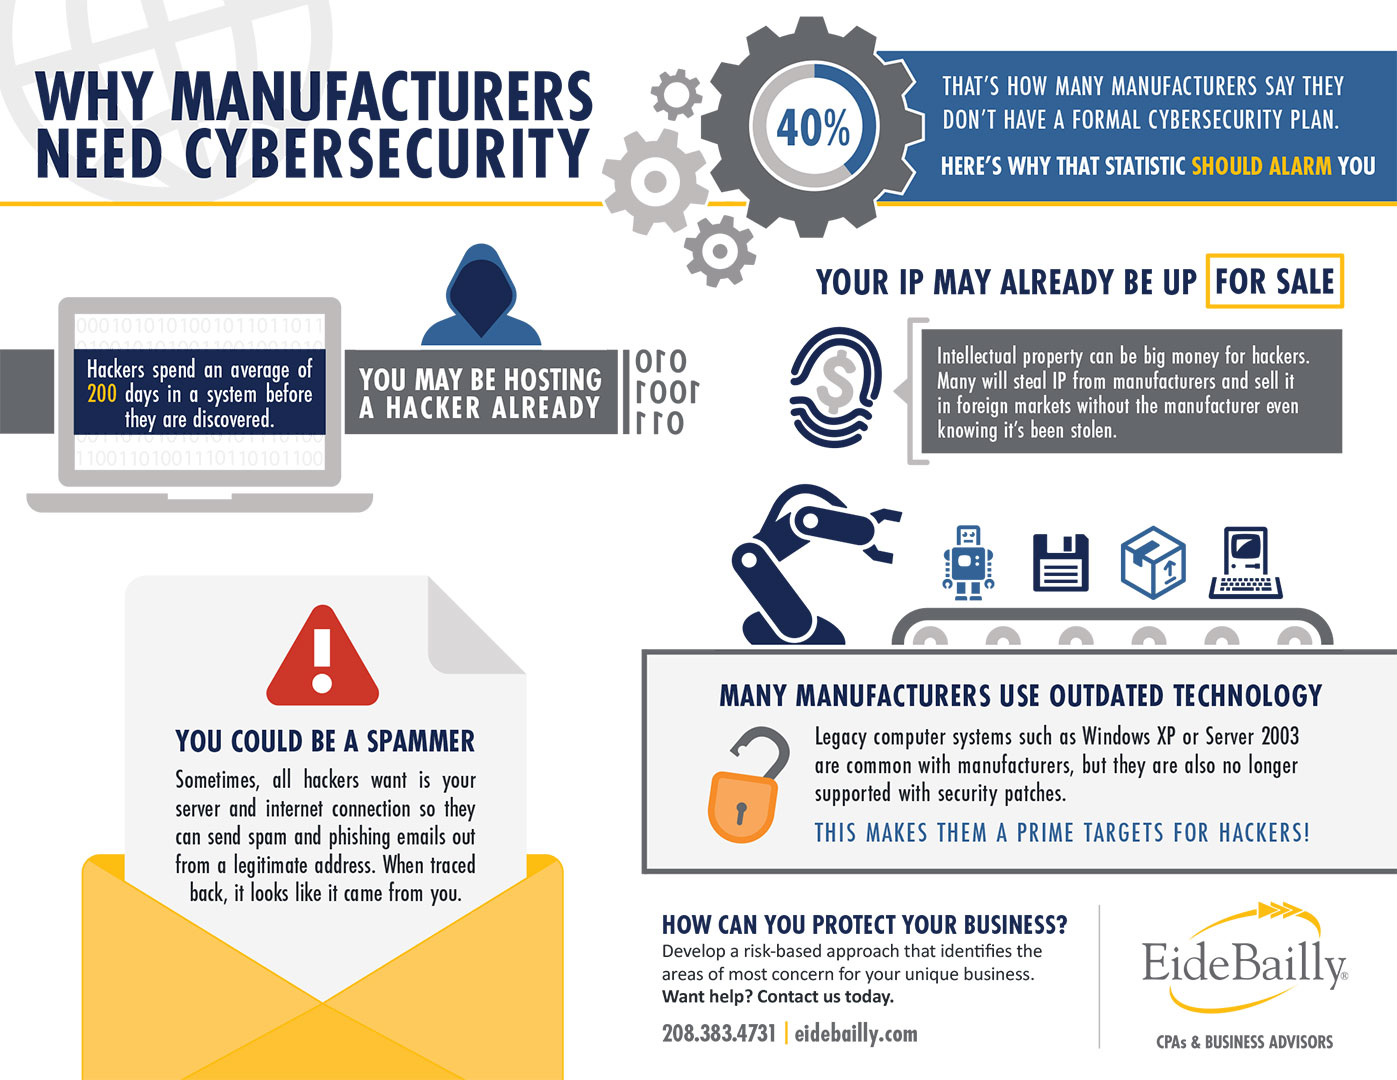 Why Manufacturers Need Cybersecurity